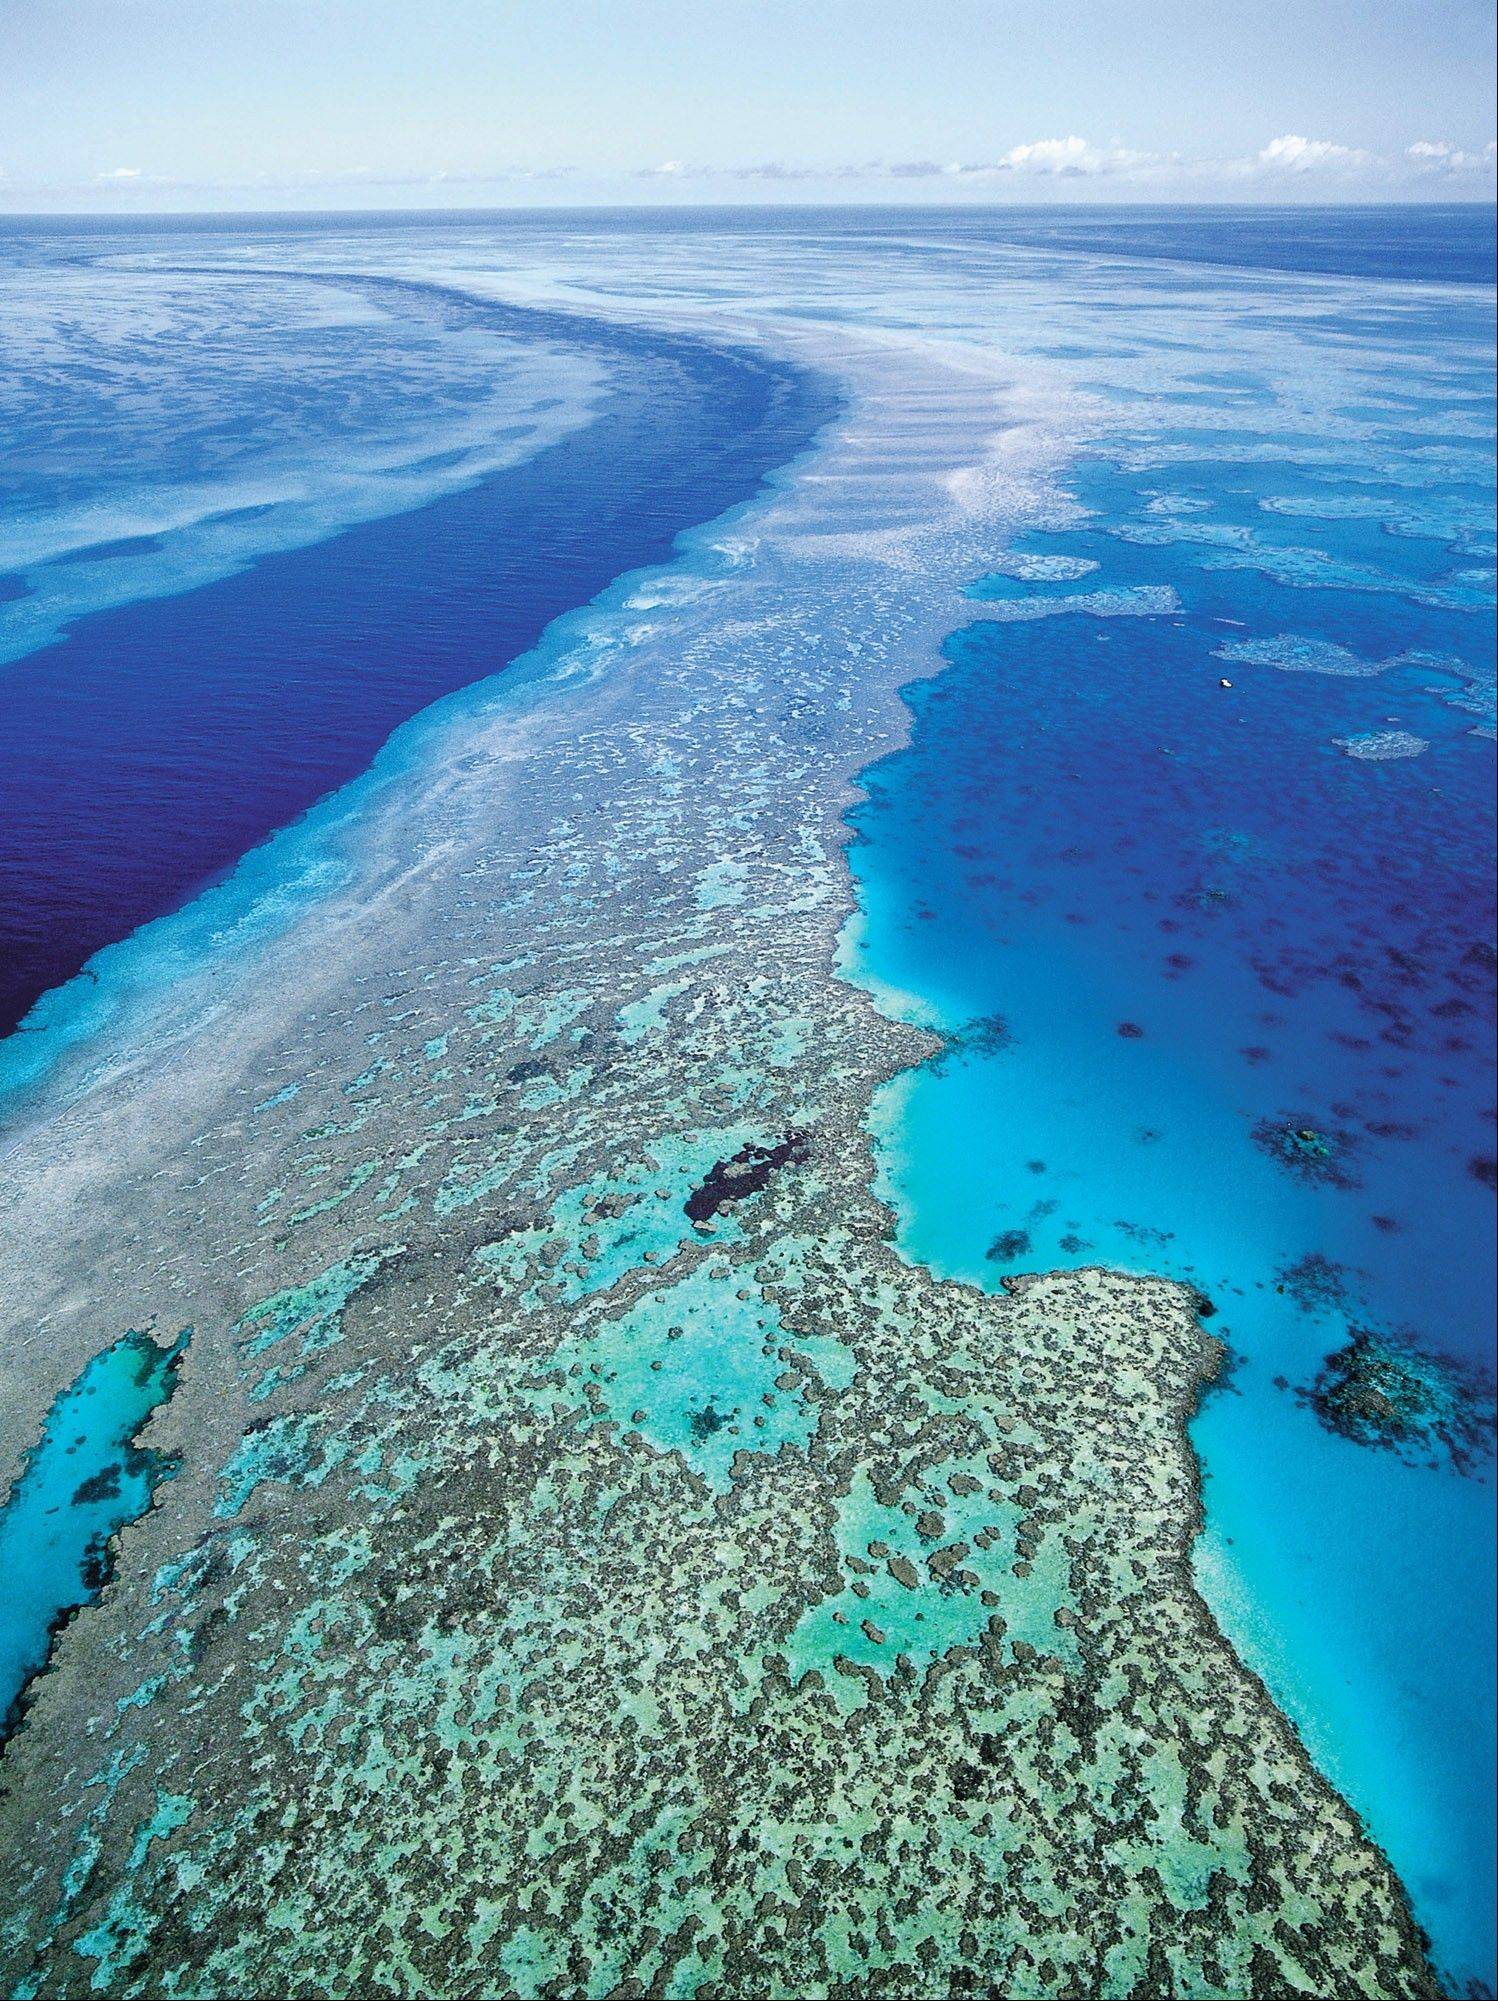 Associated Press/Sept. 2001An aerial view shows the Great Barrier Reef off Australia's Queensland state. Starvation, poverty, flooding, heat waves, droughts, war and disease already lead to human tragedies. They're likely to worsen as the world warms from climate change, a leaked draft of an international scientific report forecasts.